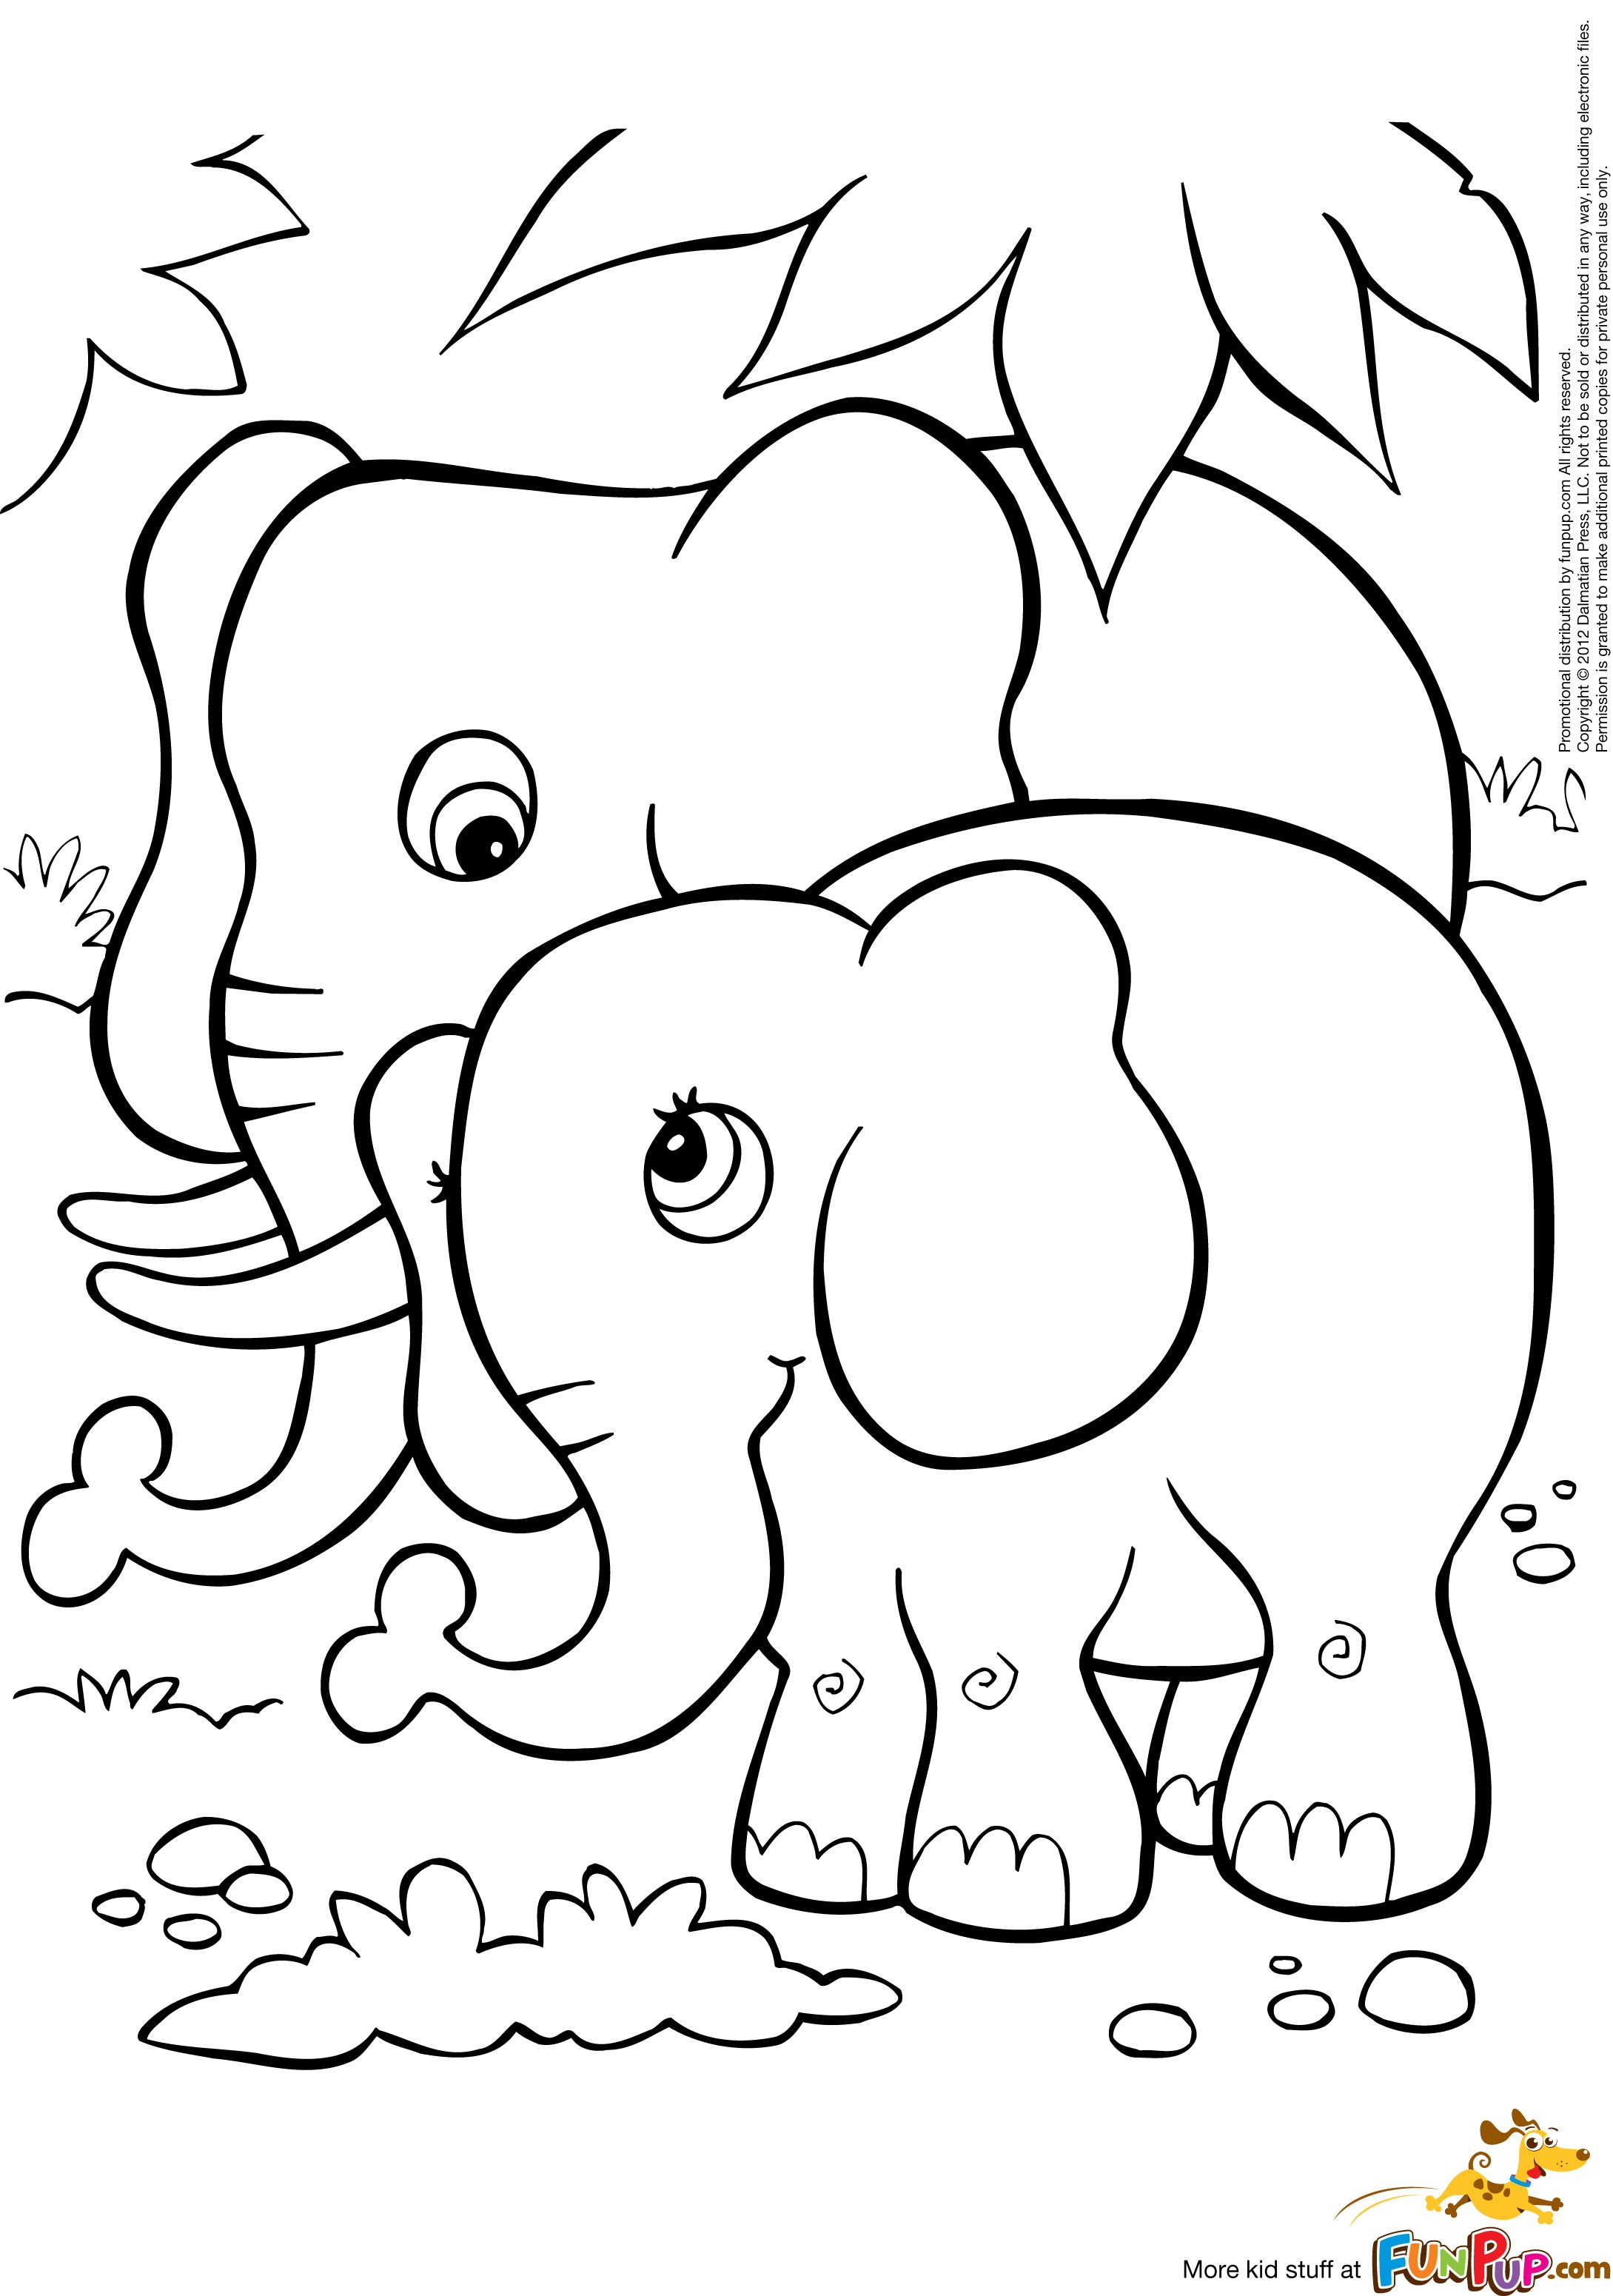 Elephant coloring pages free - Two Cute Elephants Coloring Page